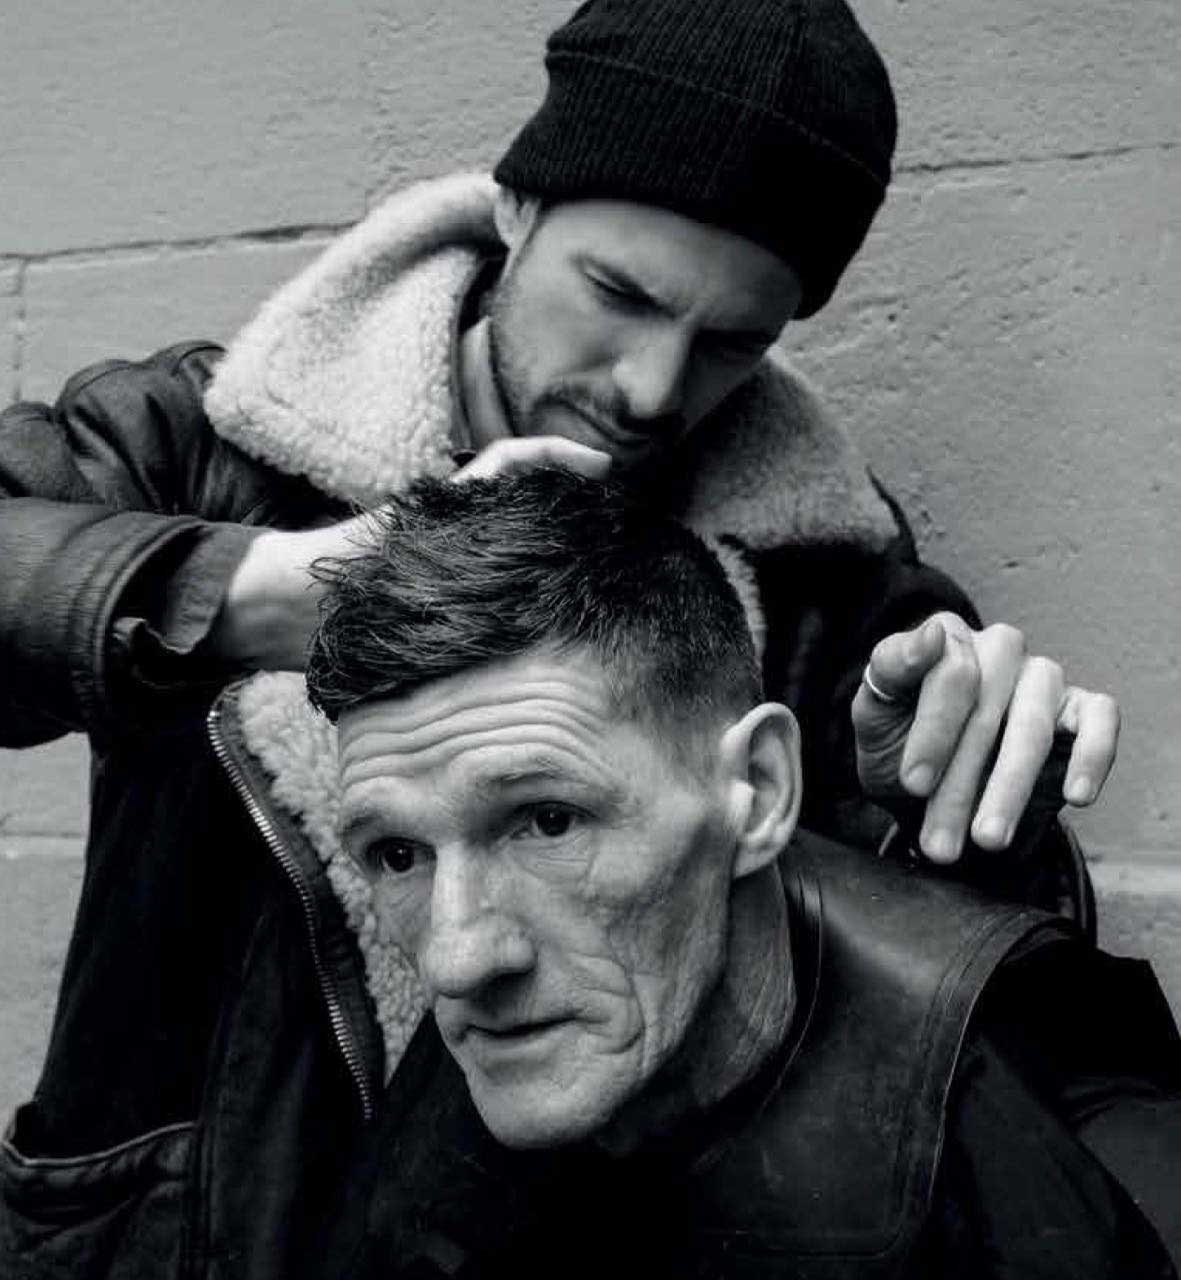 joshua coombes, do something for nothing, barber, hair, homelessness